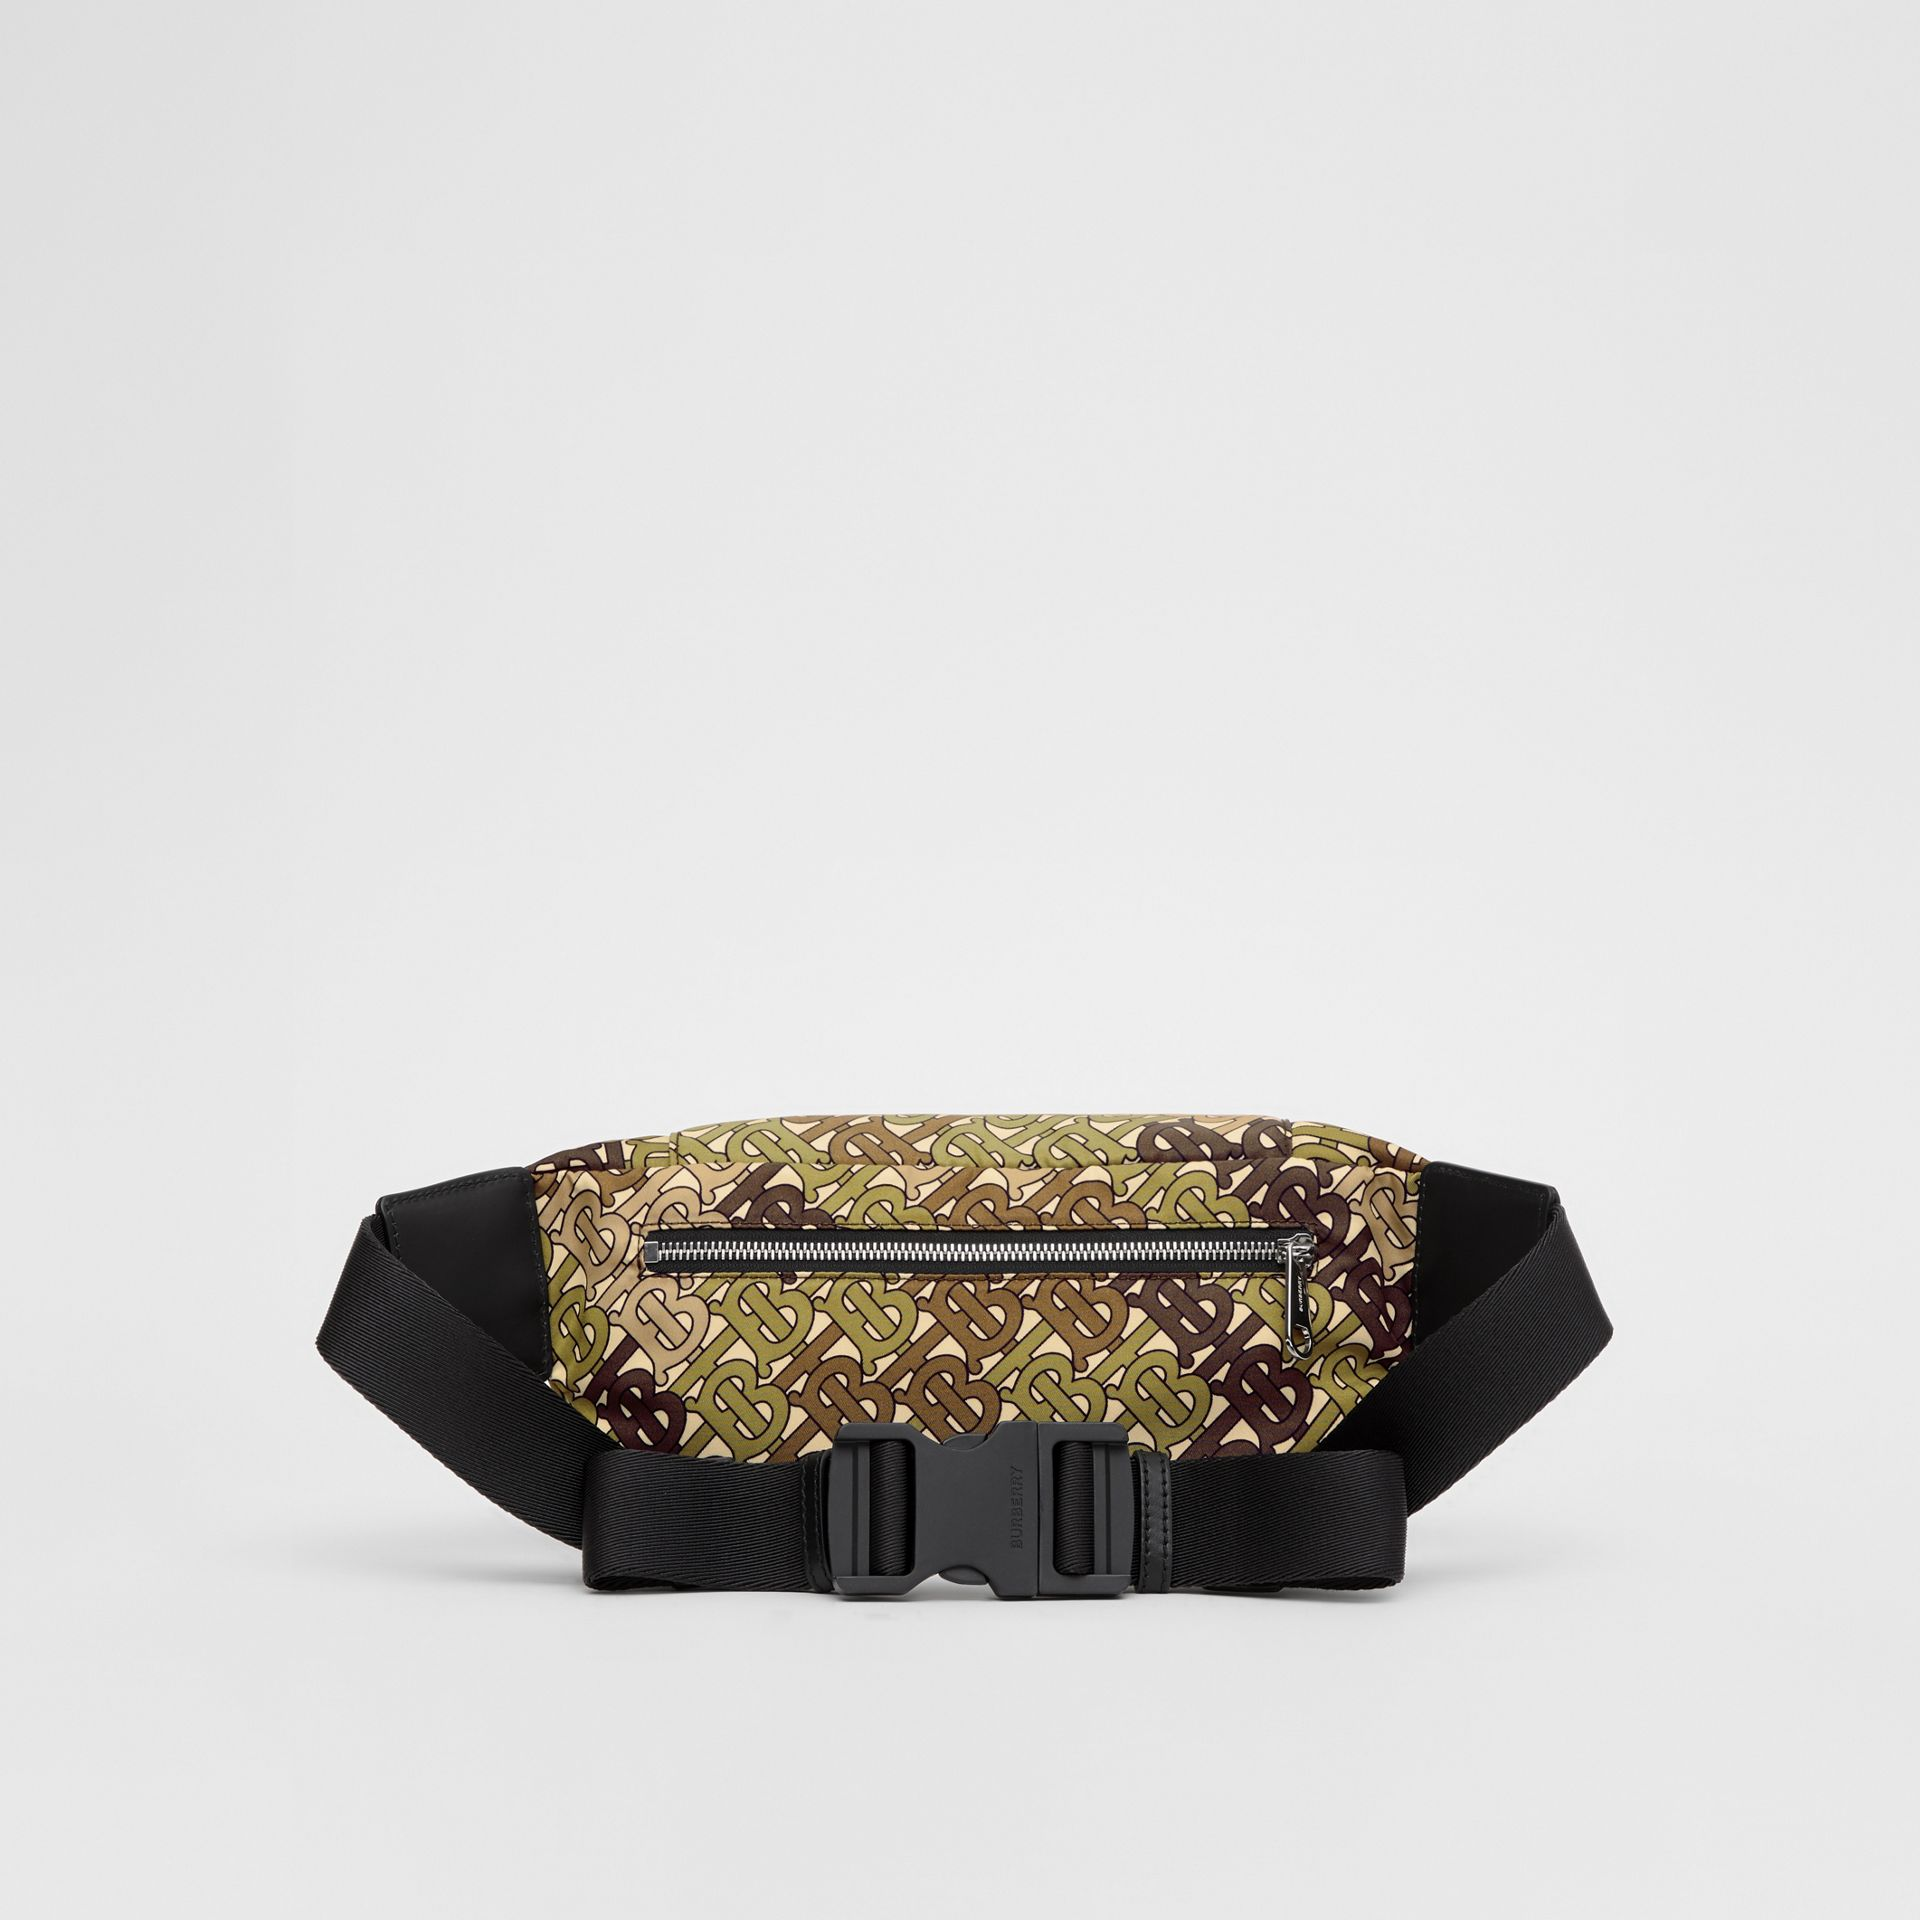 Medium Monogram Print Bum Bag in Khaki Green | Burberry Singapore - gallery image 9